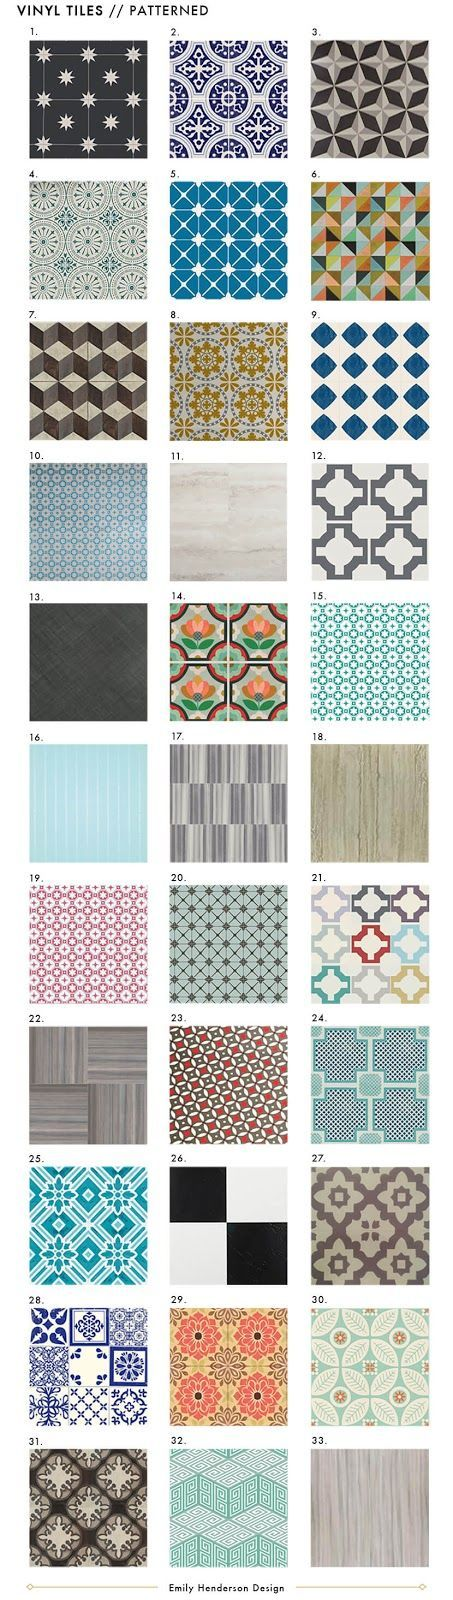 25 best ideas about linoleum flooring on pinterest for Patterned linoleum tiles